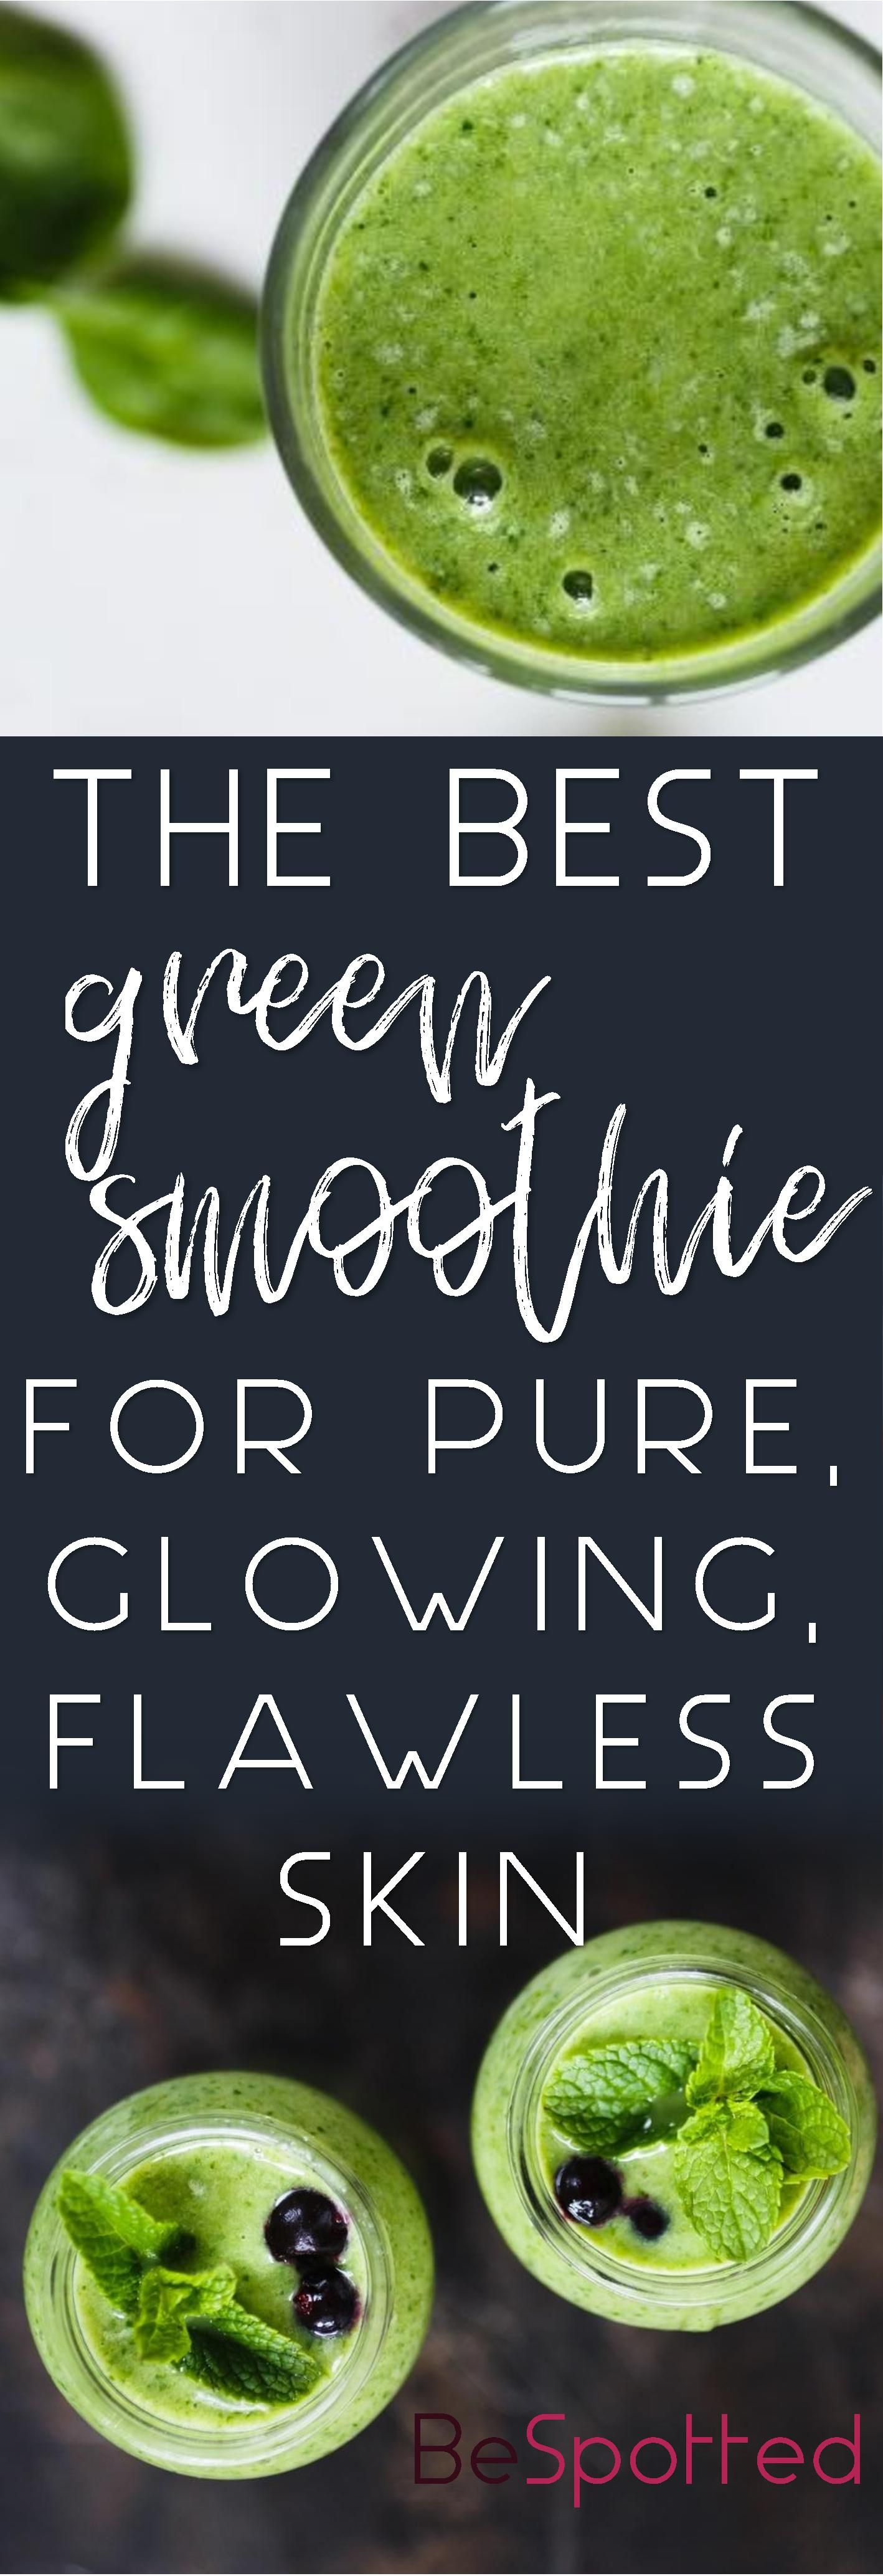 The Best Green Smoothie for Pure, Glowing, Flawless Skin #healthyskin